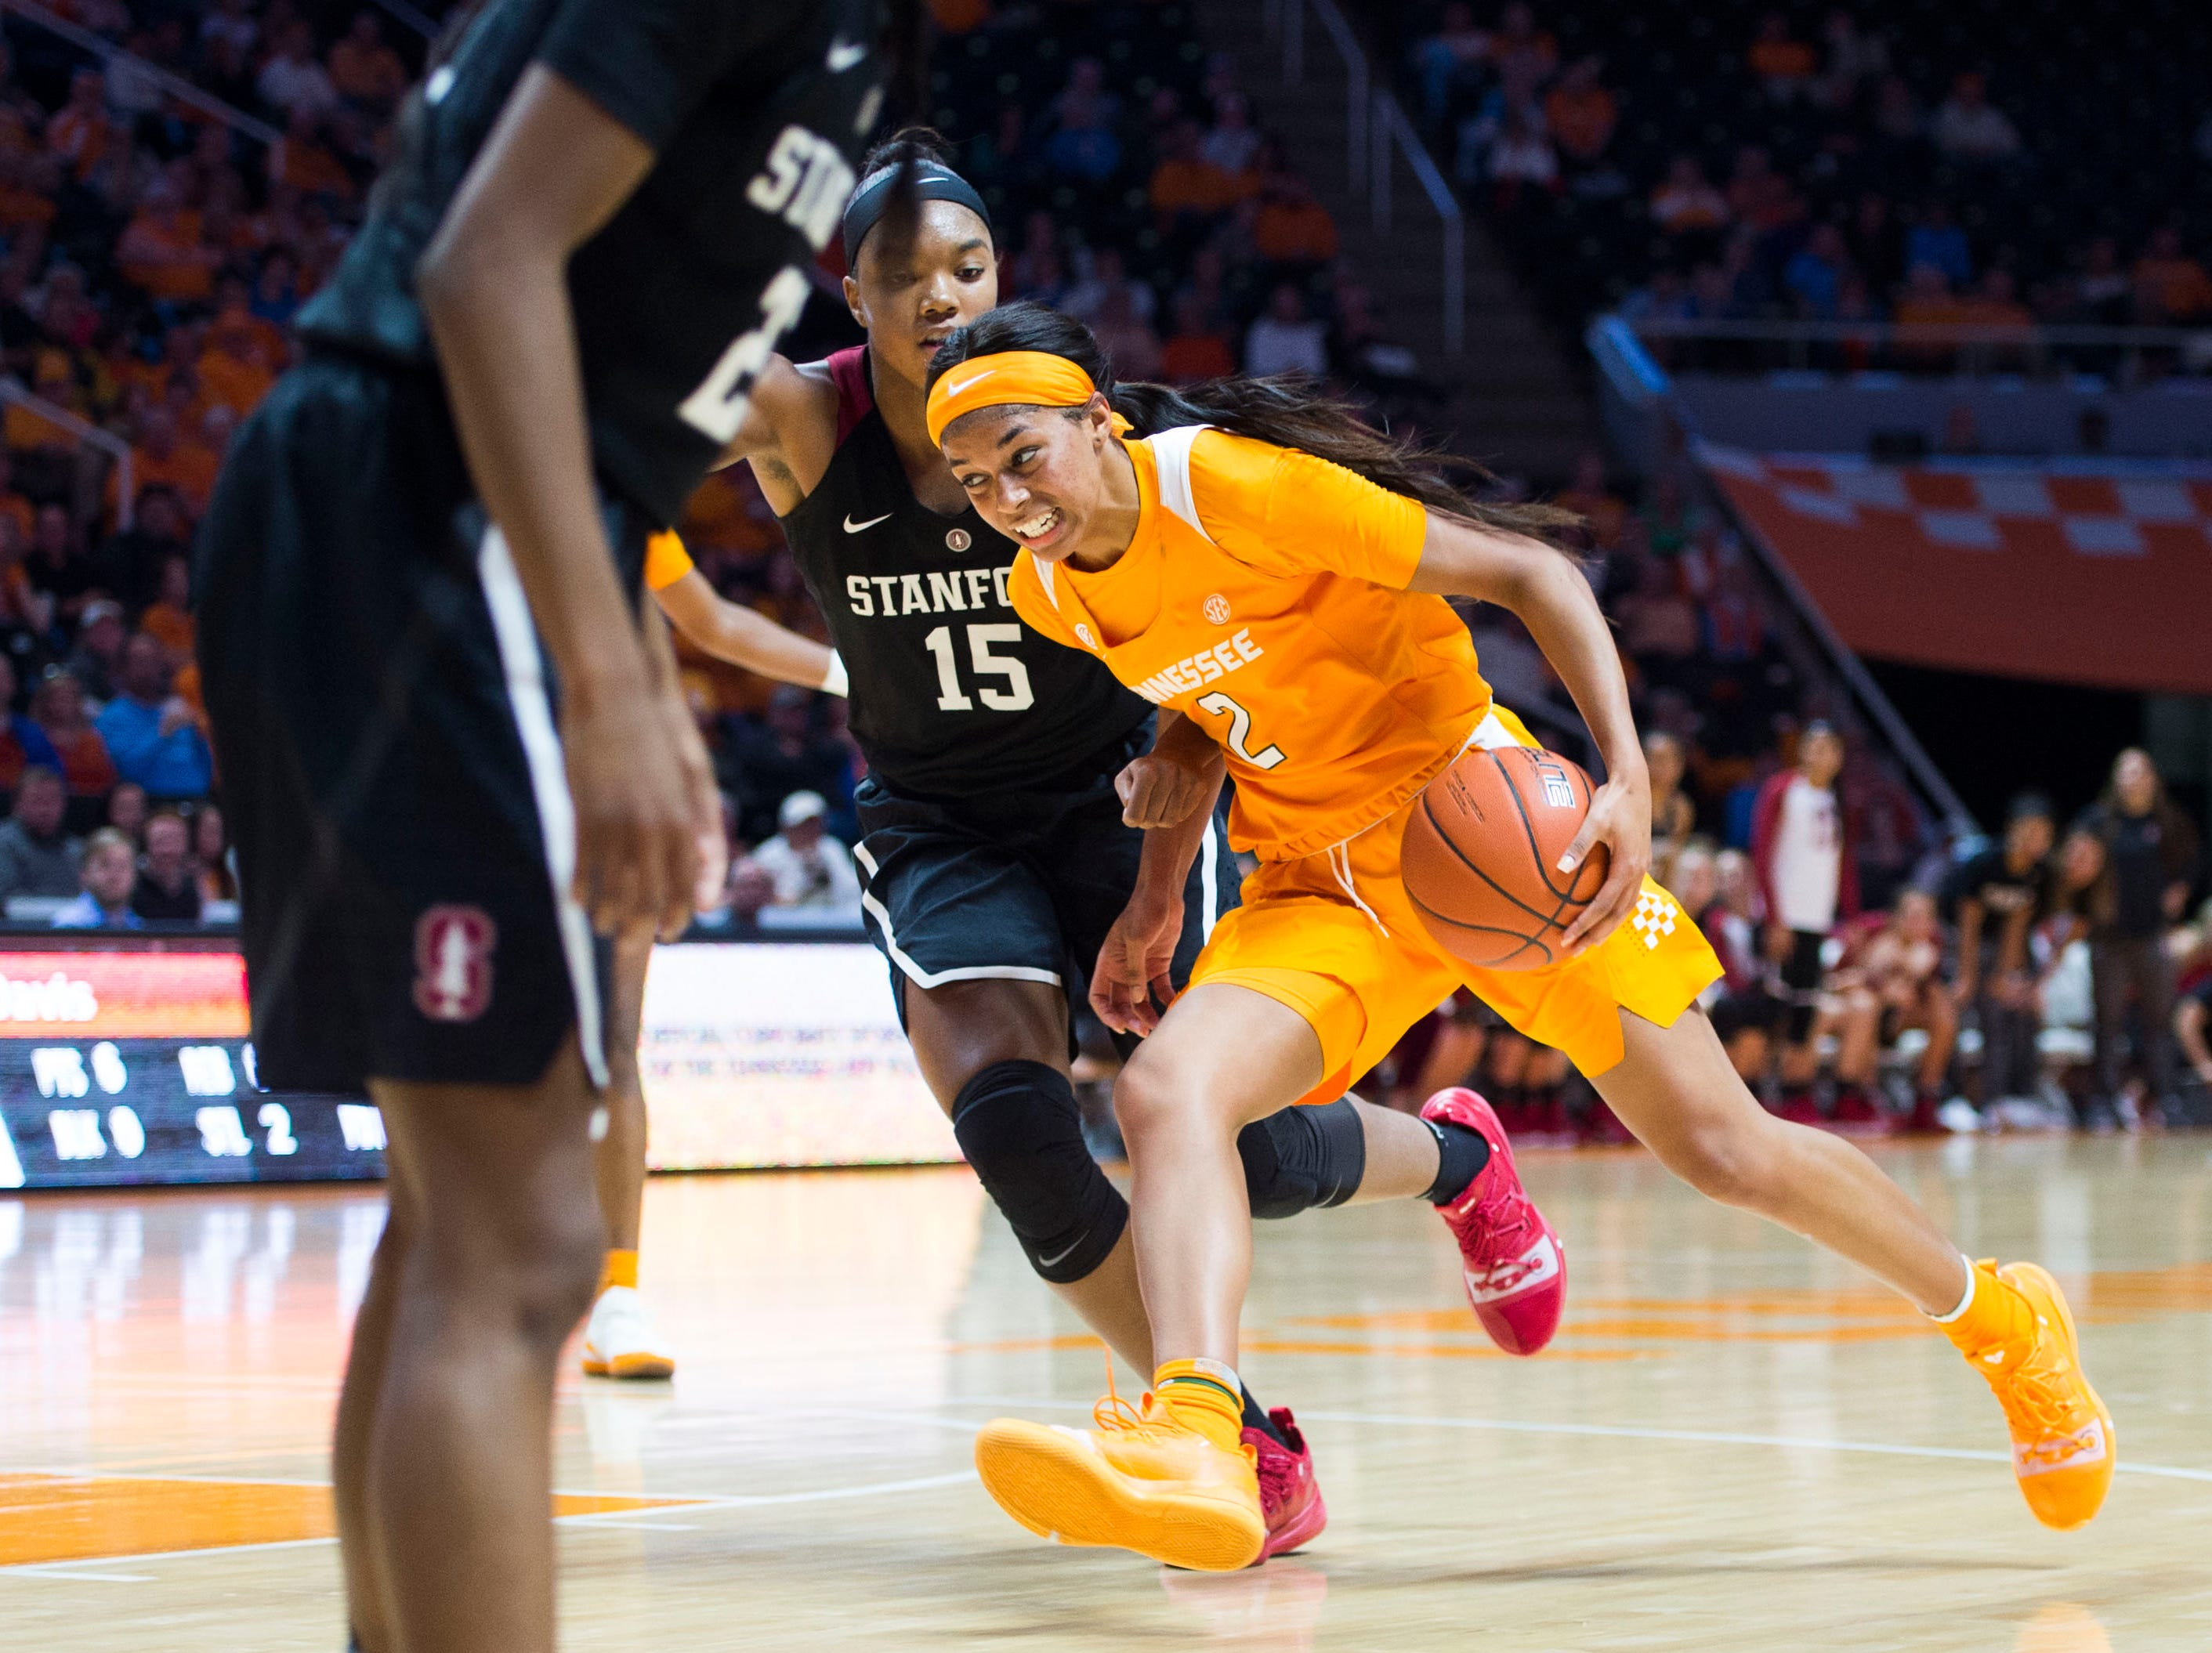 Tennessee's Evina Westbrook (2) drives the ball towards the basket while defended by Standford's Maya Dodson (15) during a women's basketball game between Tennessee and Stanford at Thompson-Boling Arena Tuesday, Dec. 18, 2018.